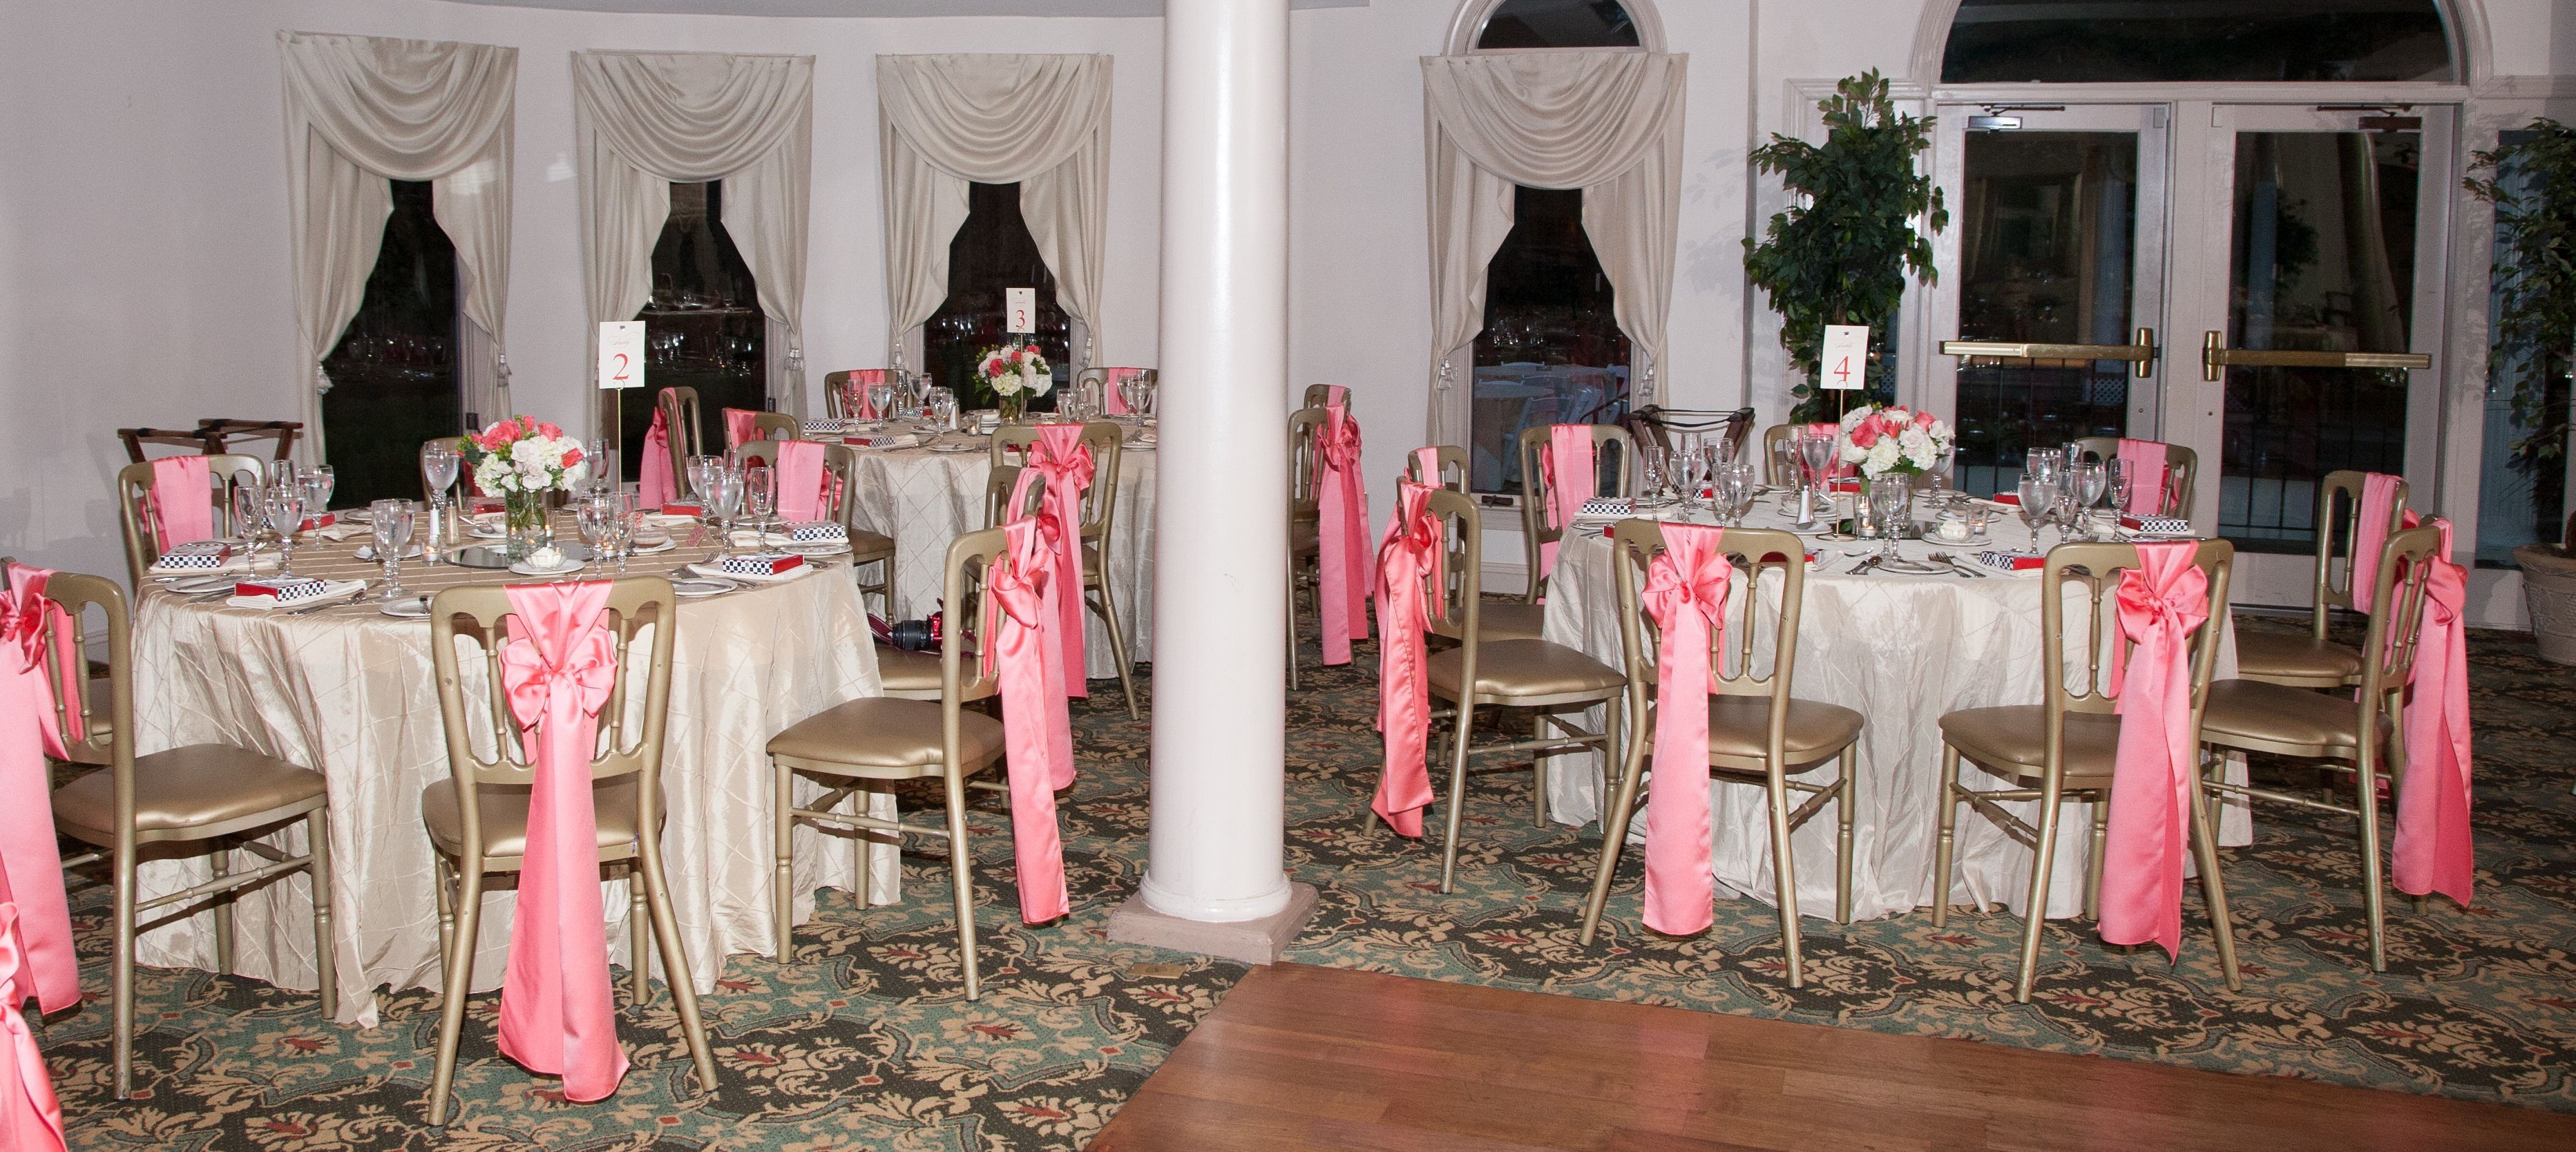 Champagne Pintuck Linens With C Chair Sashes Clark Photography